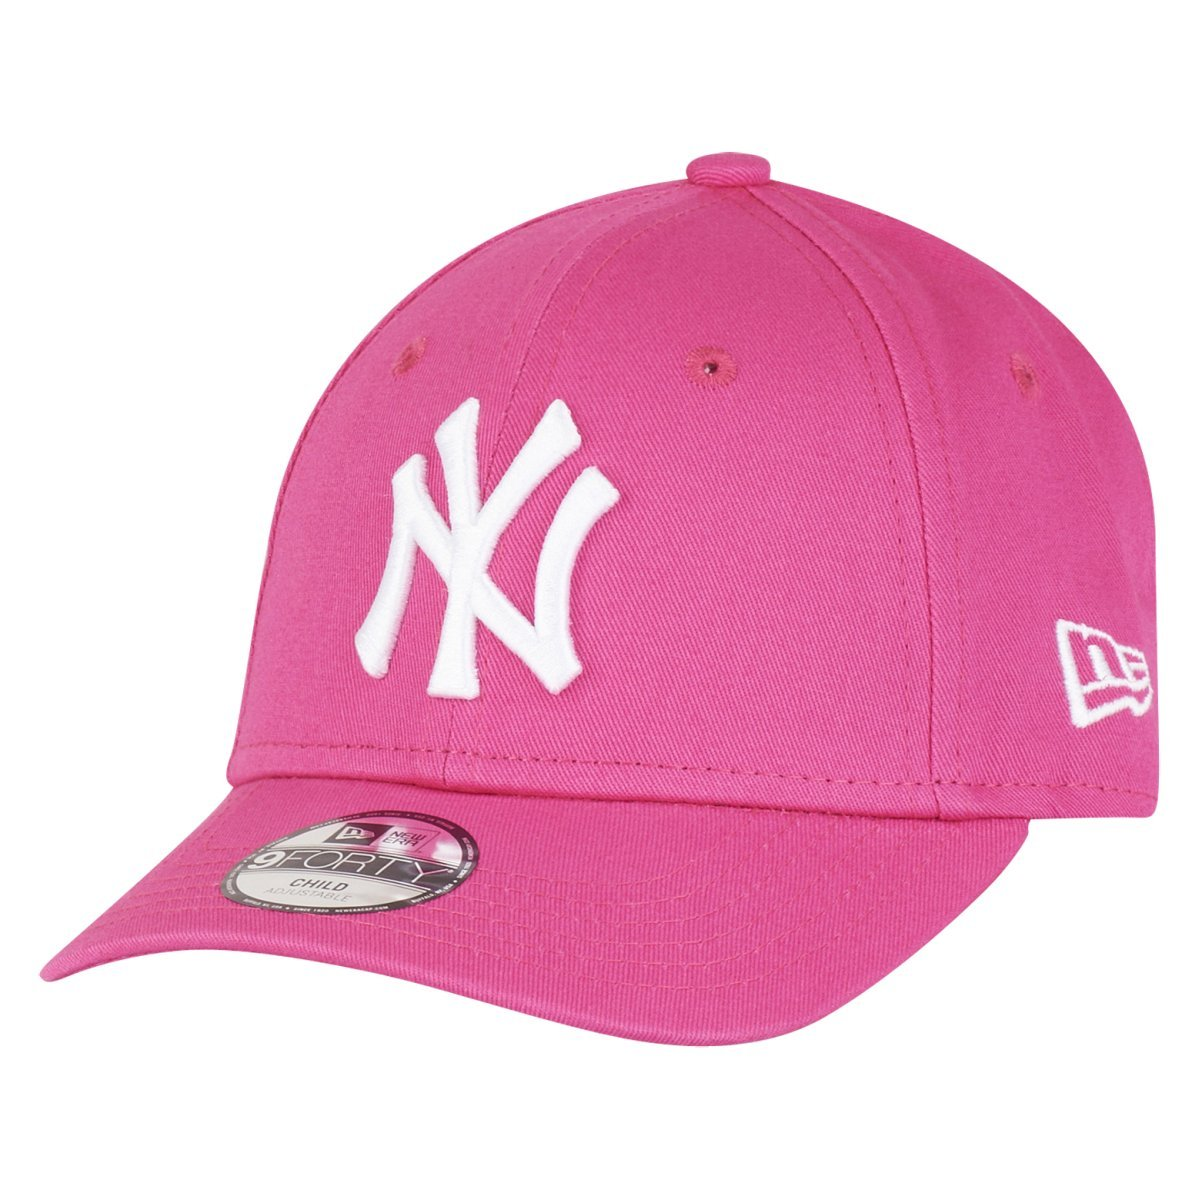 4a5dad78cdc1d New Era New York Yankees Strapback Cap 9forty Kappe Basecap Child Youth  Adjustable - The Hip Hop Collection Shop